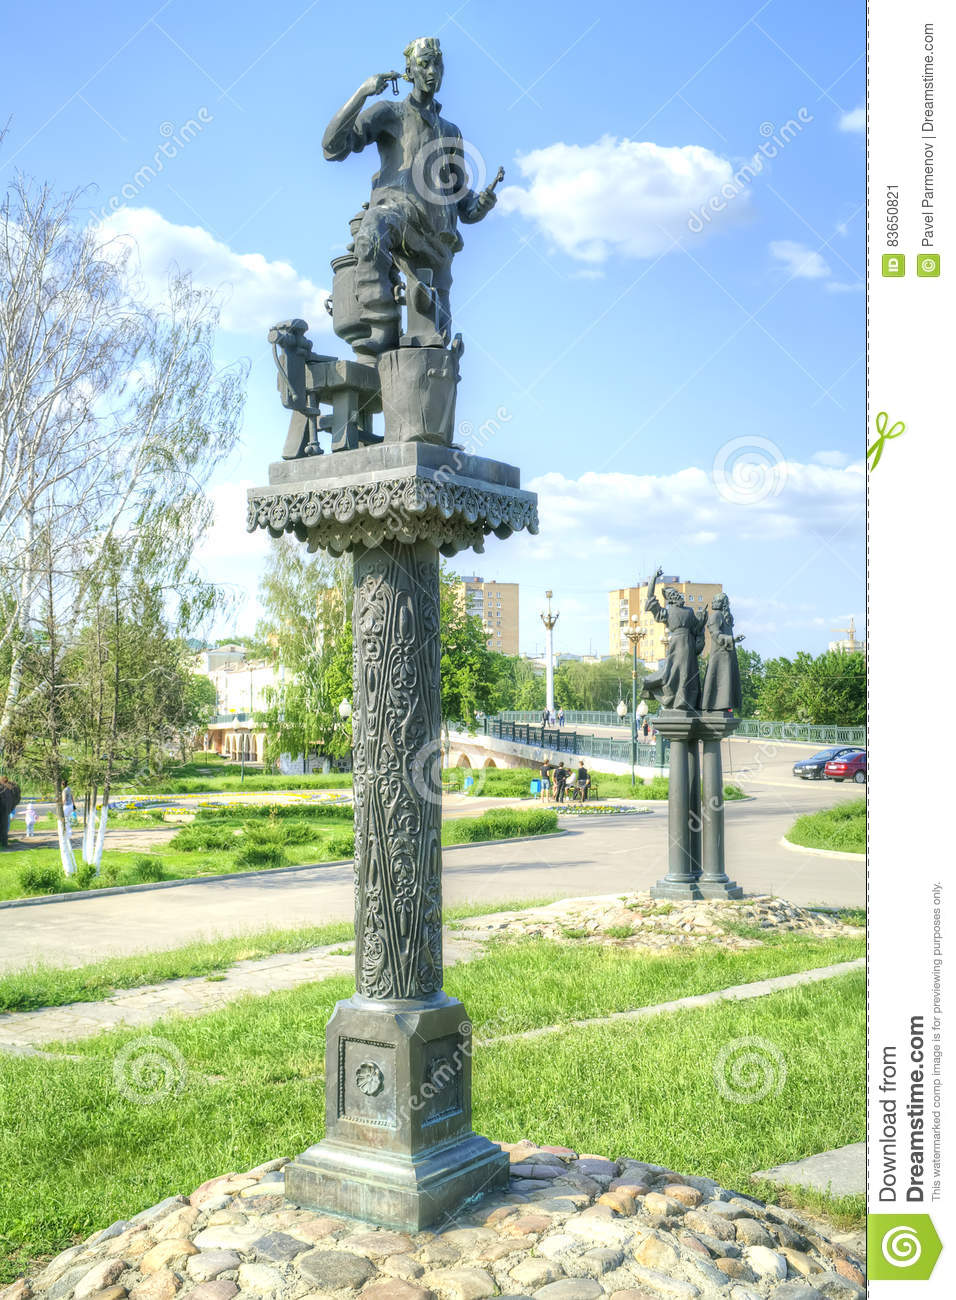 City Oryol. Sculptures of personages of the writer Nikolai Leskov